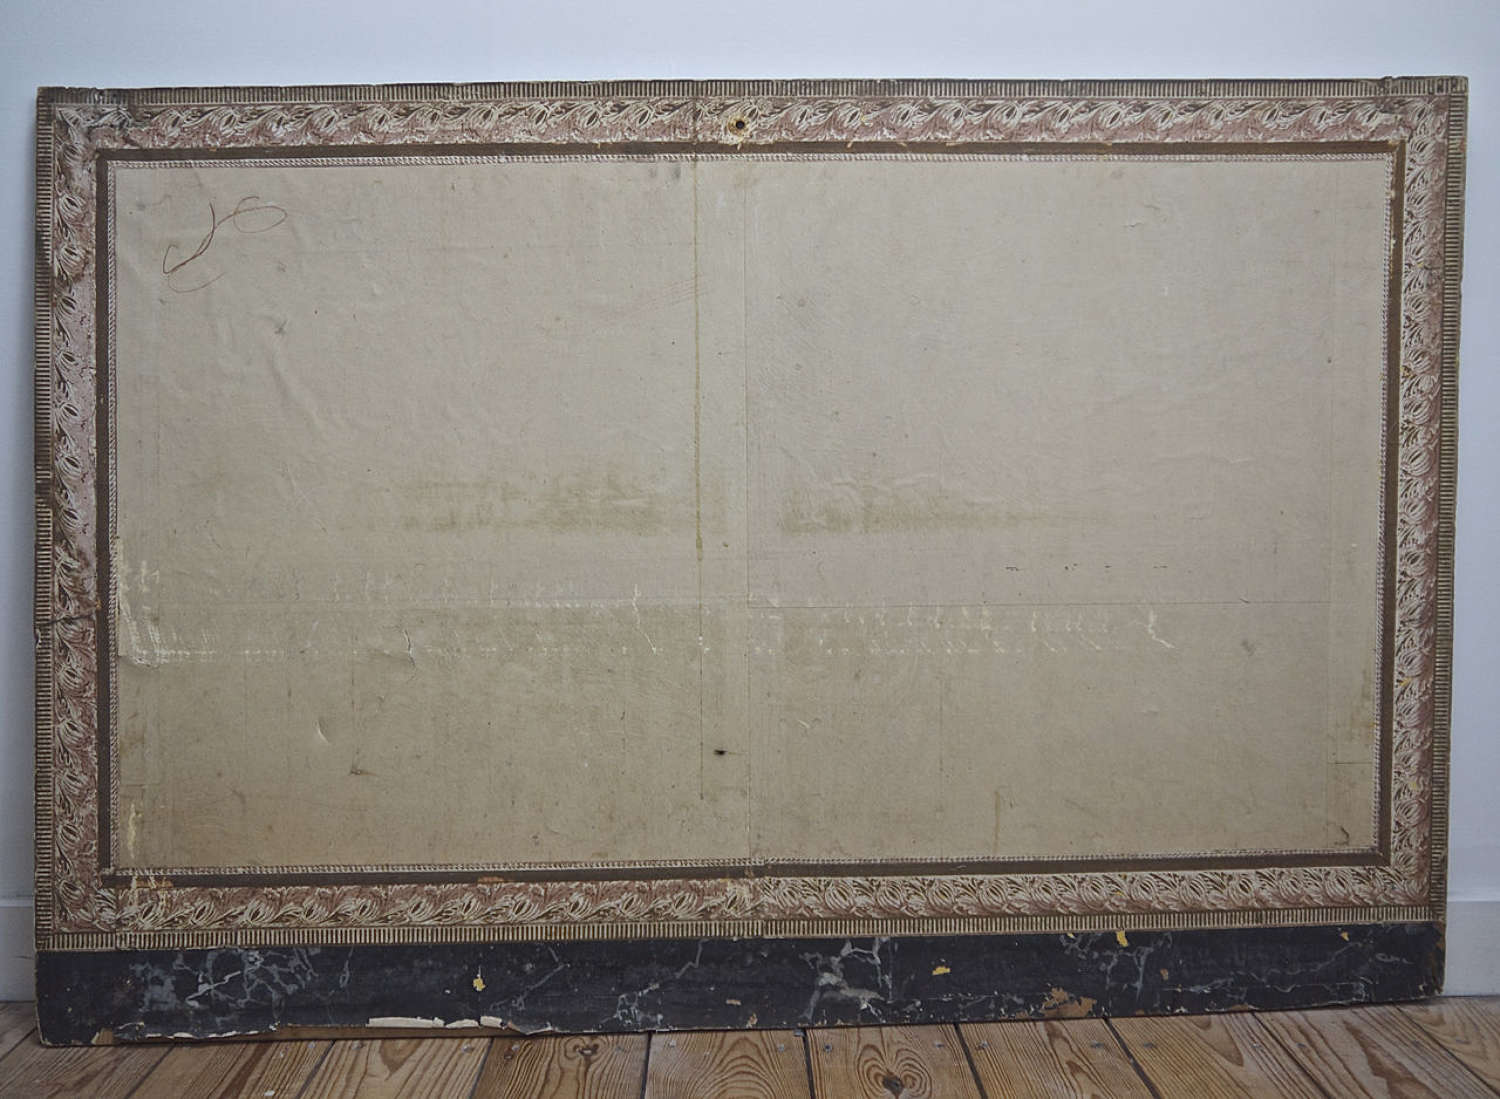 Papier Peint Fire Board French Early 19th Century